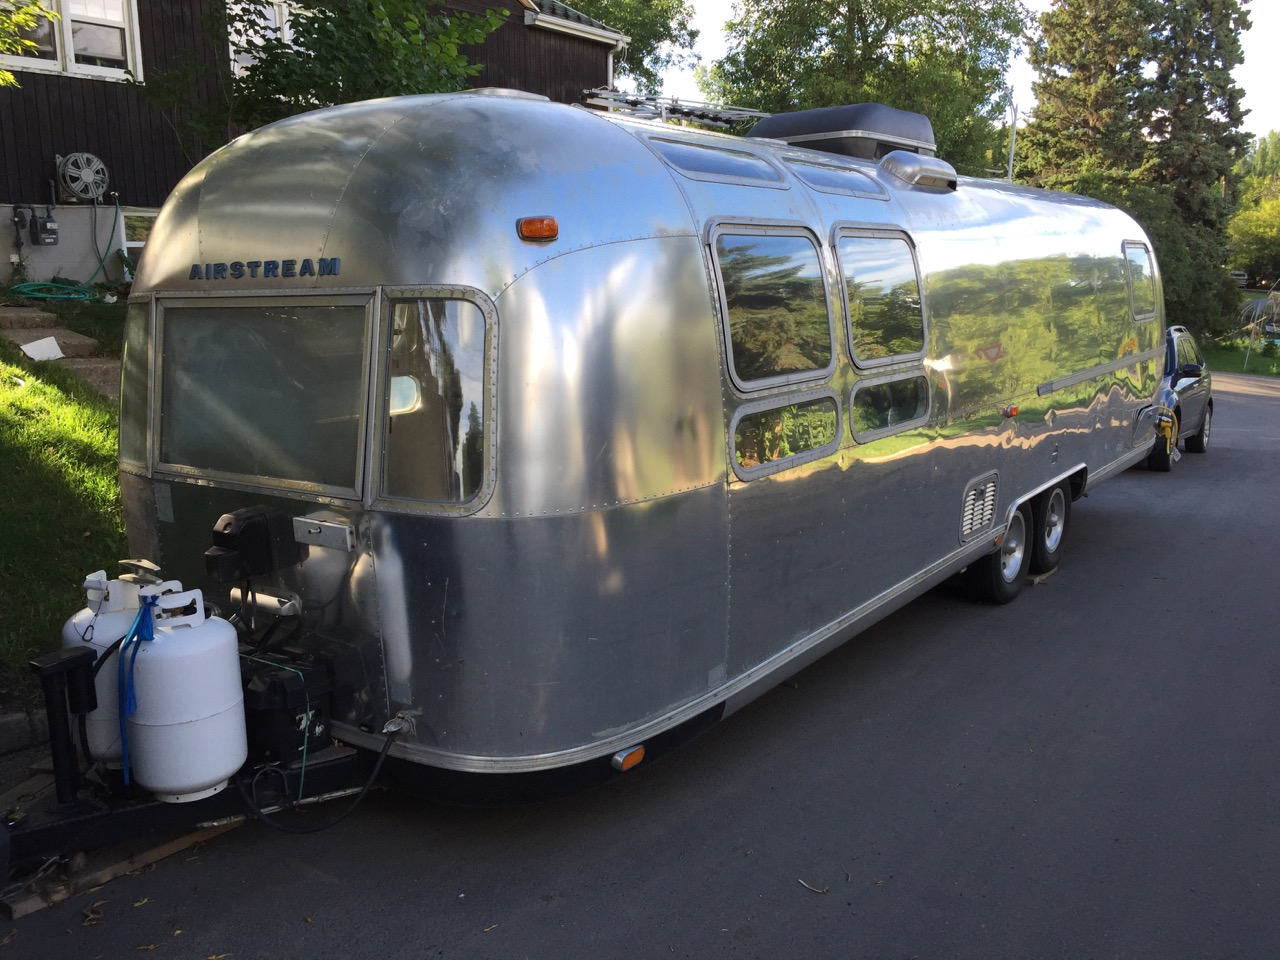 1978 Airstream 31' Sovereign - street side